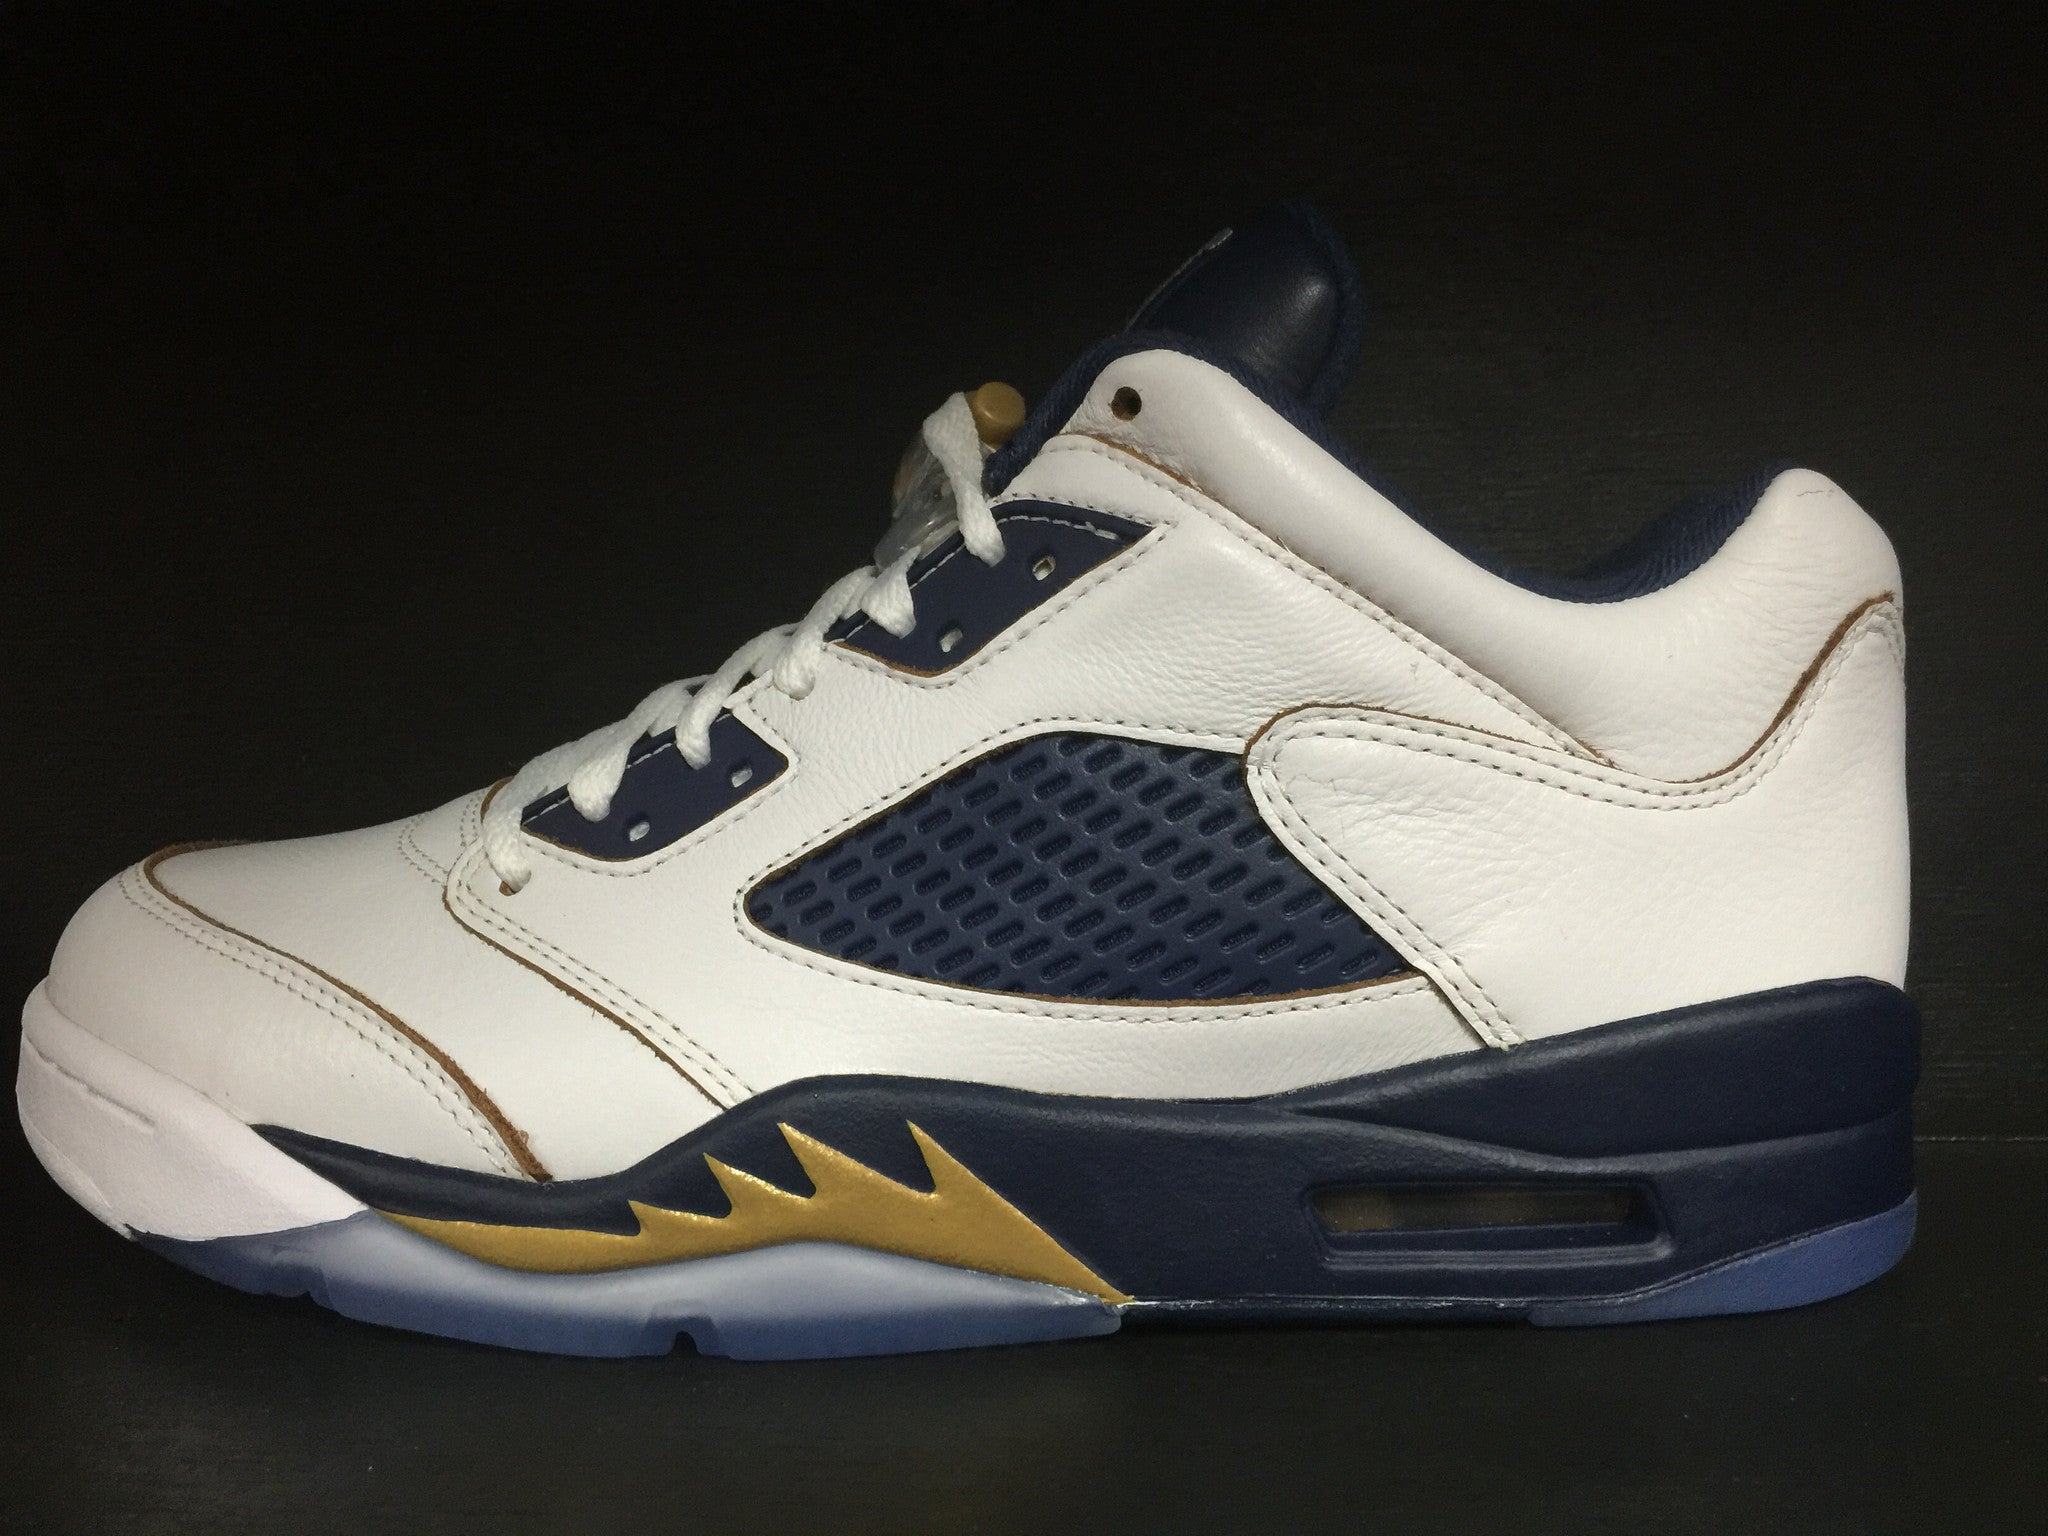 Air Jordan 5 Retro Low 'Dunk From Above'